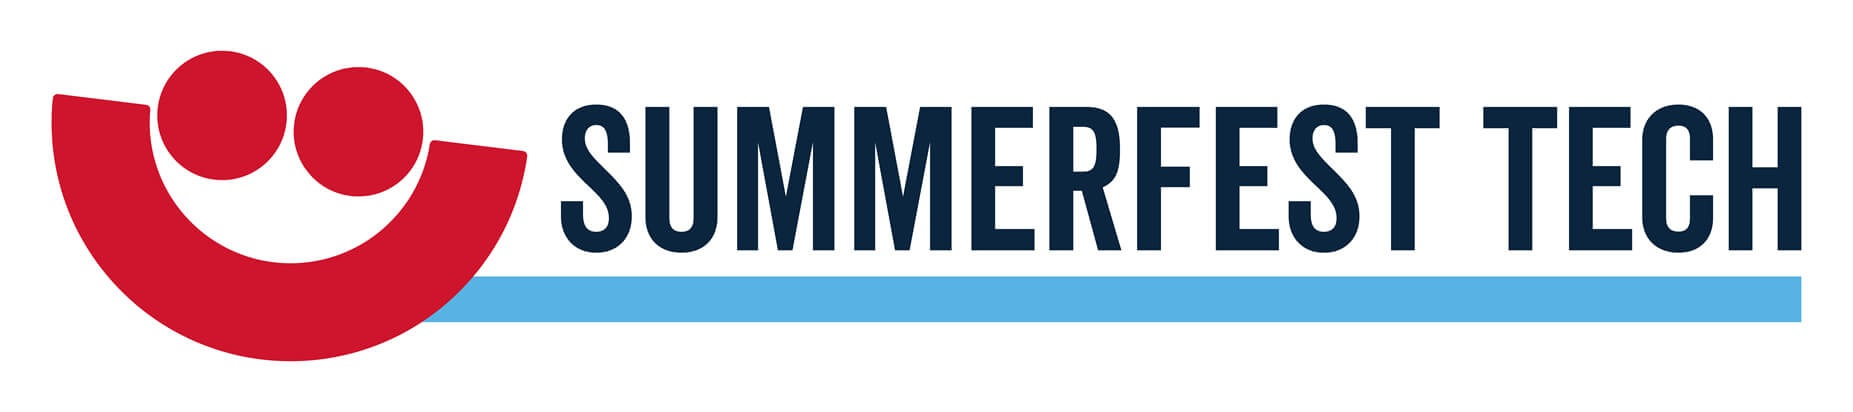 sf19-summerfesttech-logo-horizontal-cropped.jpg